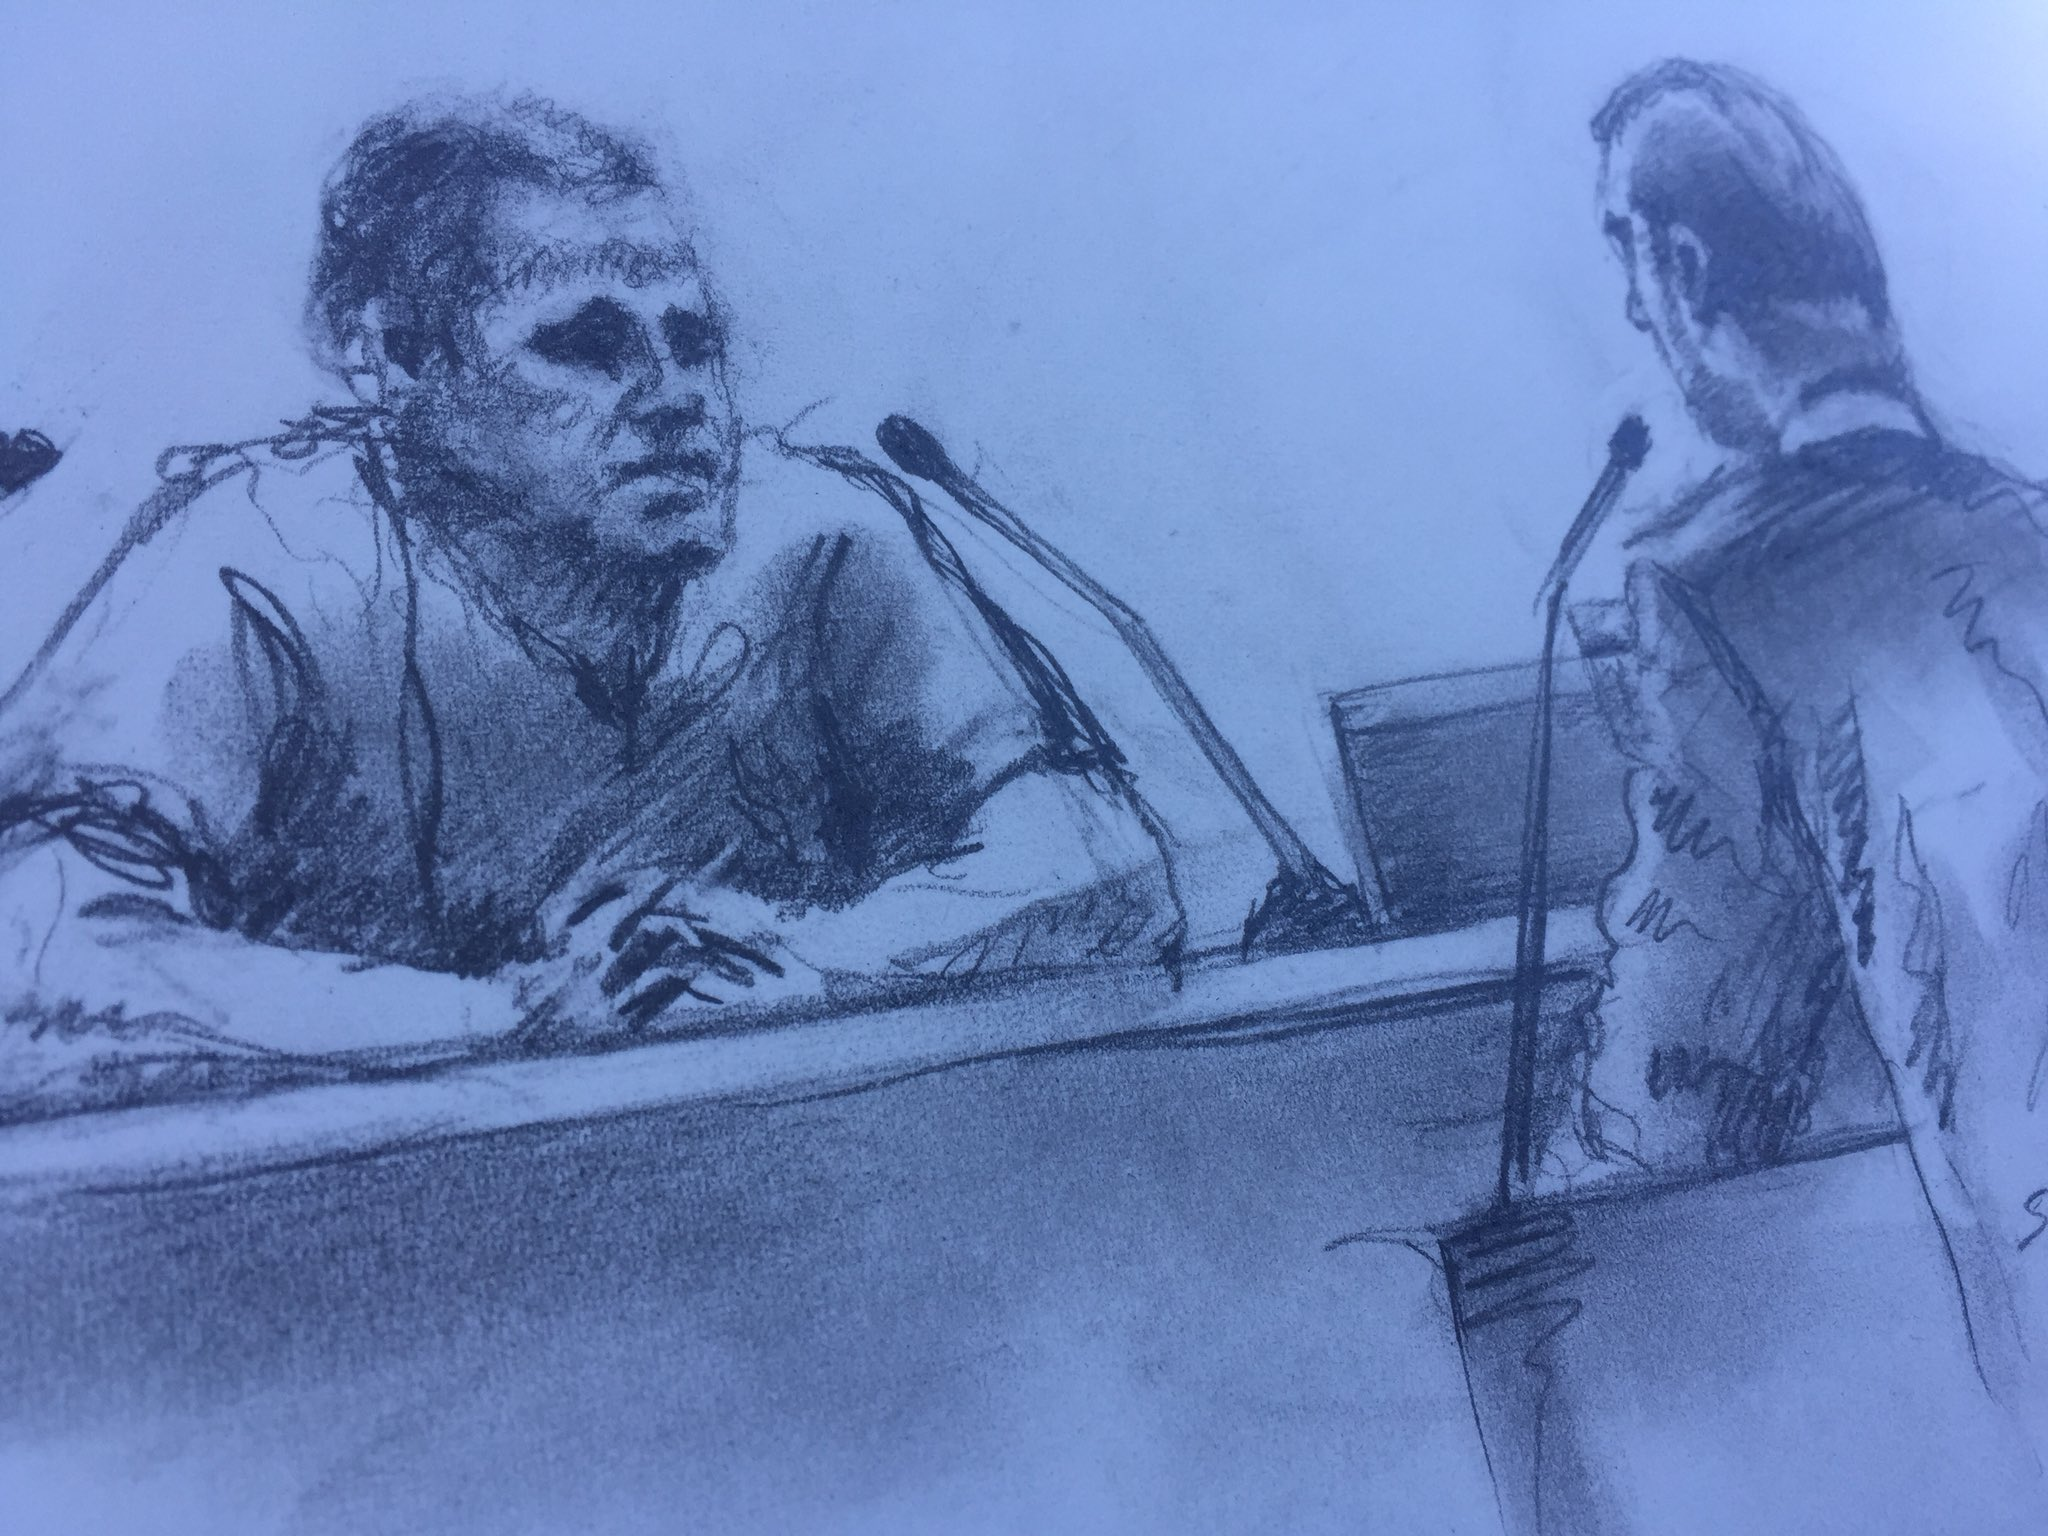 Ammon Bundy to learn on Monday if a judge will allow him out of federal custody during trial. He faces conspiracy and weapons charges connected to the Bundy Ranch standoff. (Stewart Freshwater)